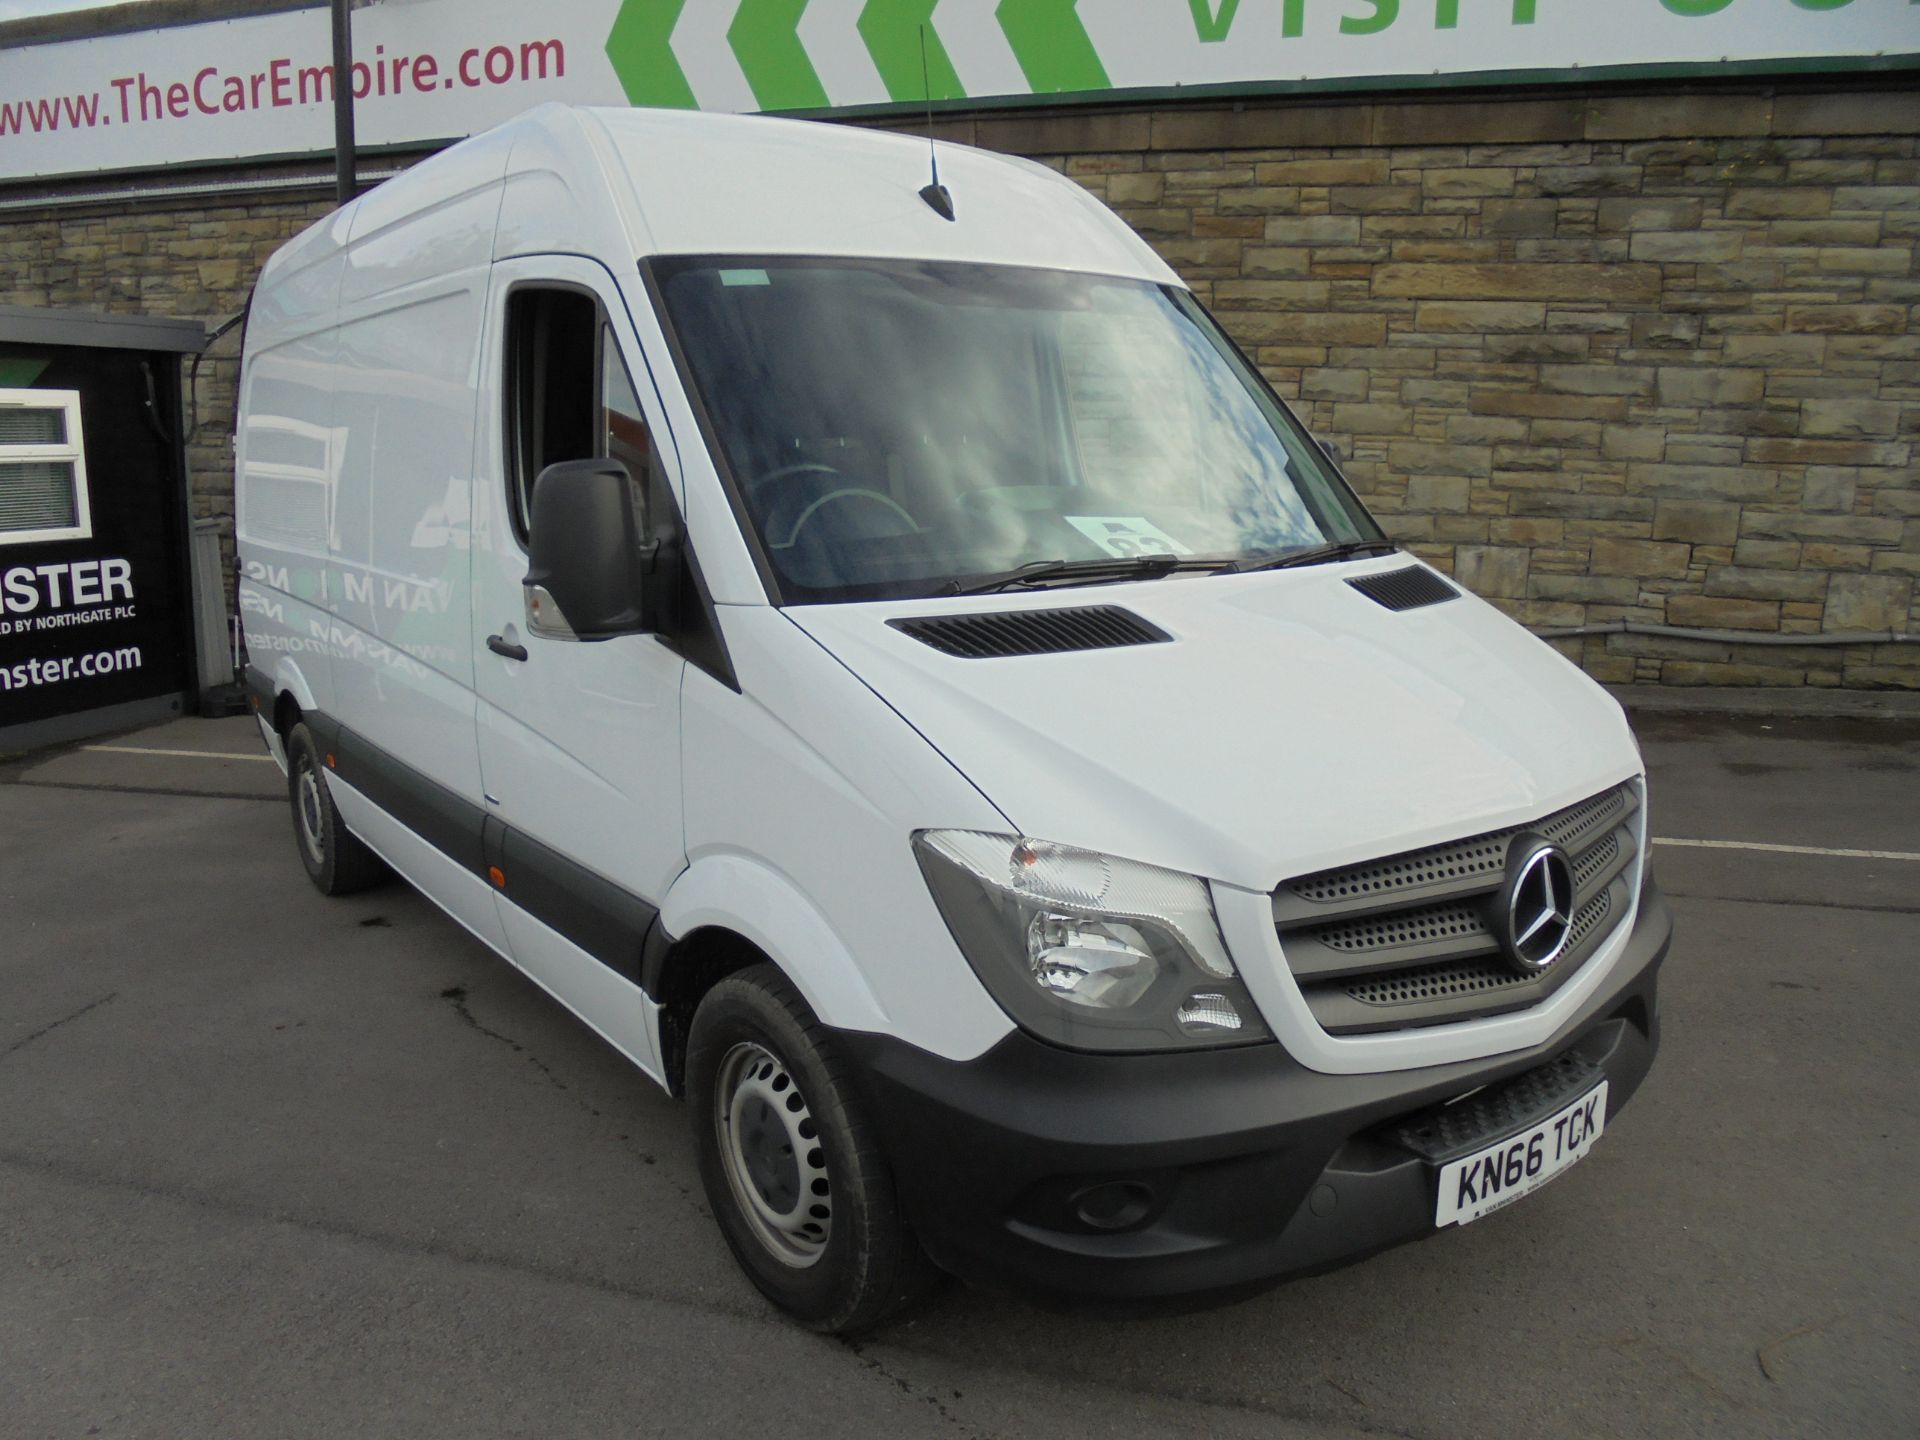 2016 Mercedes-Benz Sprinter 3.5T High Roof Van MWB (KN66TCK)